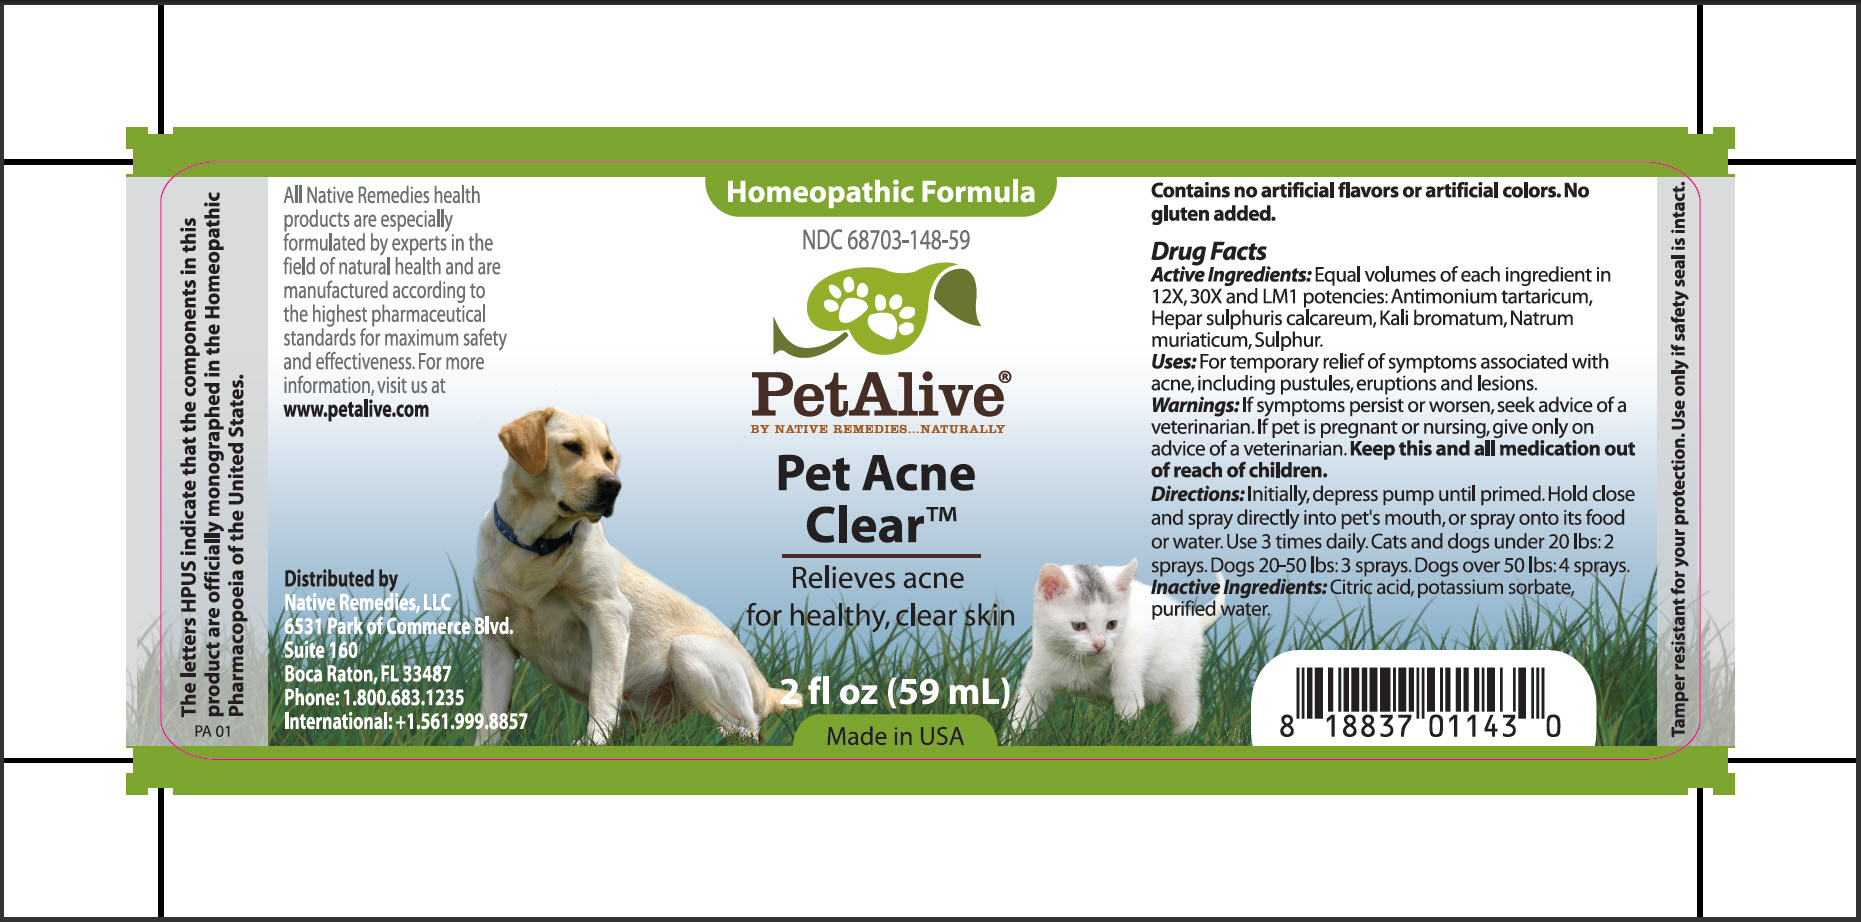 Pet Acne Clear (Antimonium Tartaricum, Hepar Sulphuris Calcareum, Kali Bromatum, Natrum Muriaticum, Sulphur) Spray [Native Remedies, Llc]